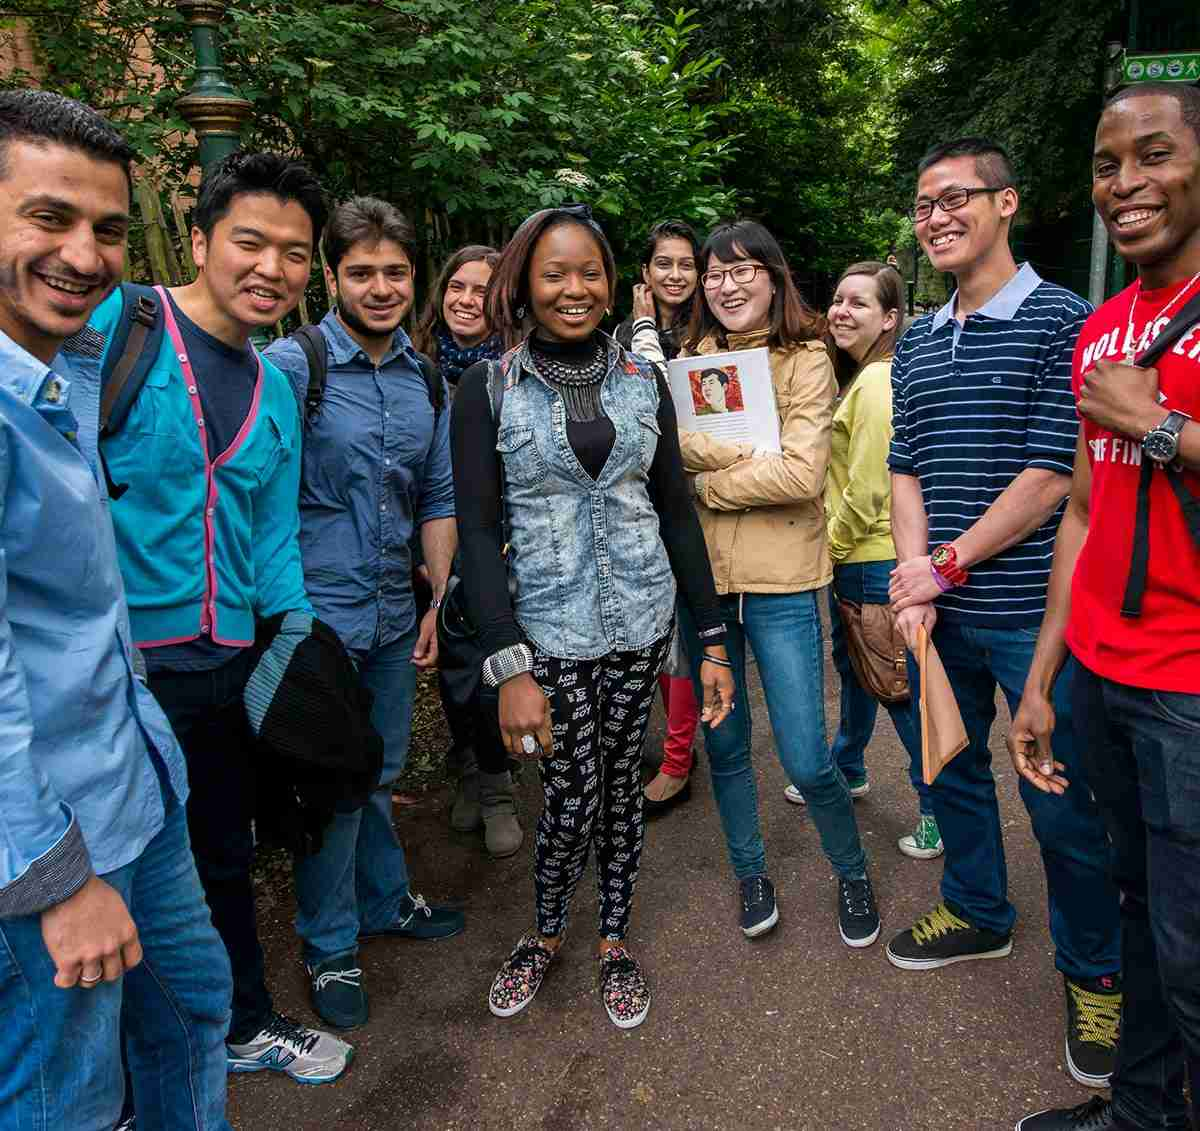 International students at Kingston University - Kingston